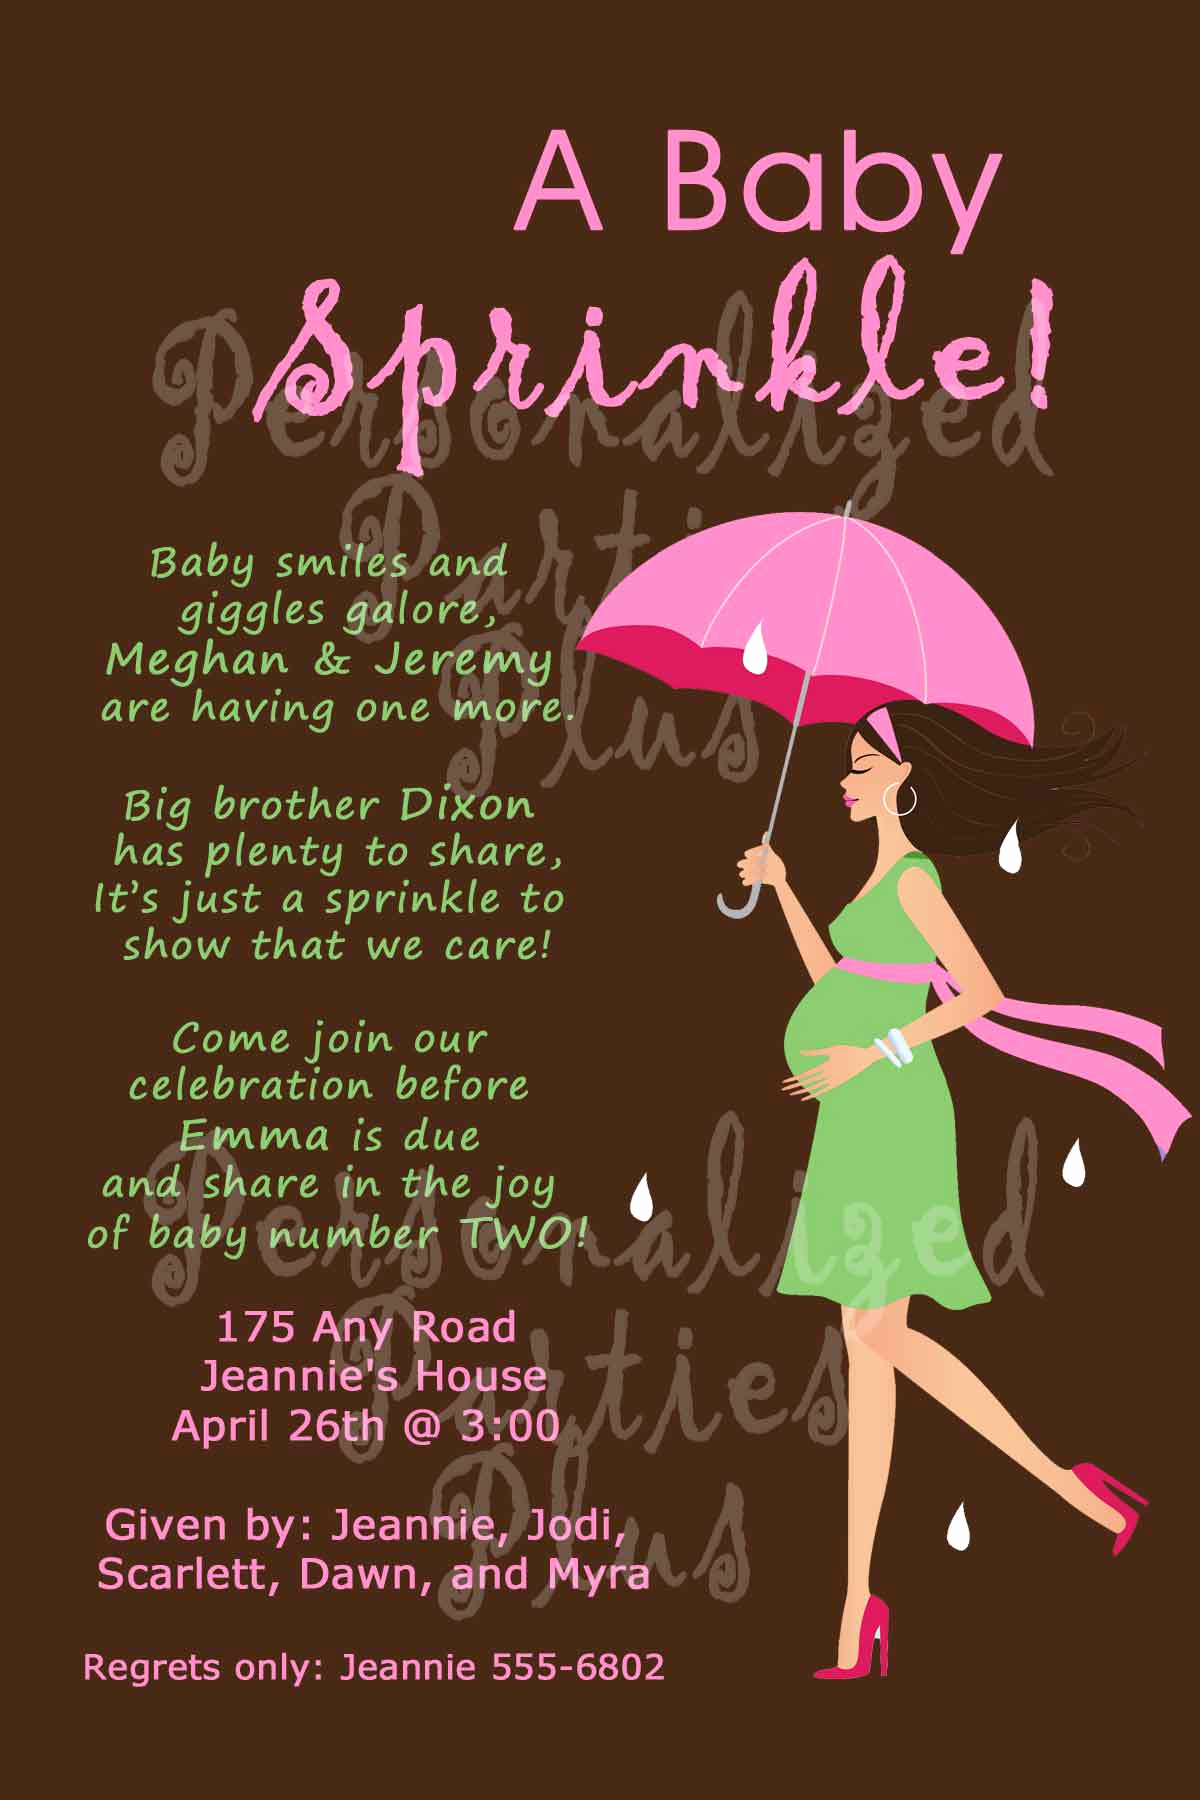 3rd Baby Shower Invitation Wording Awesome Baby Sprinkle Invitation for Second Baby